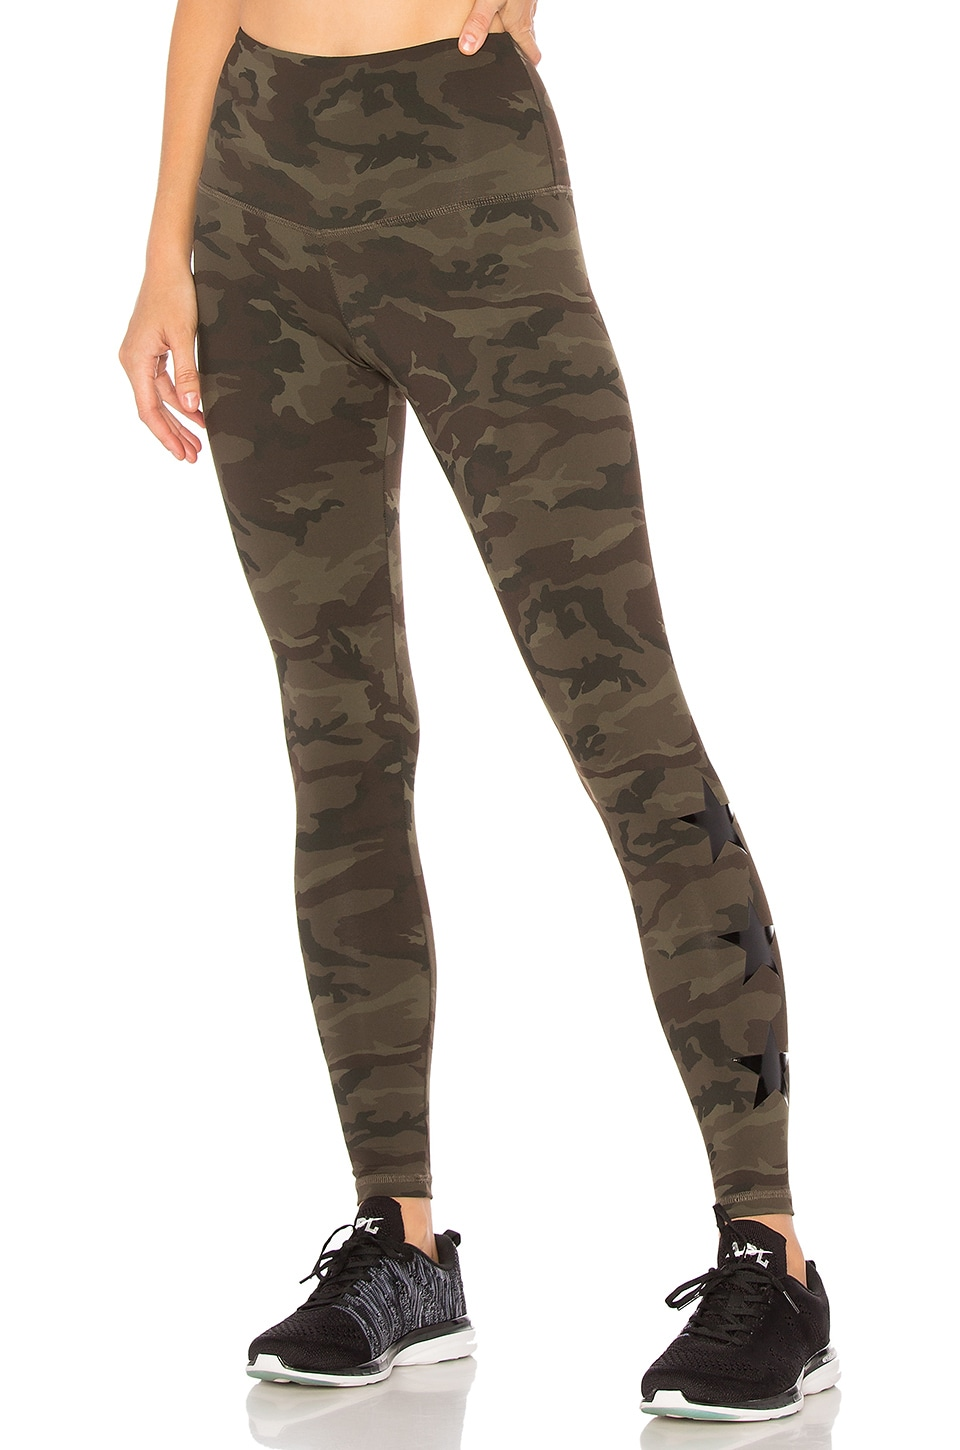 28938b34b303f STRUT-THIS Stars Camo Legging in Green Camo & Shiny Black Stars ...